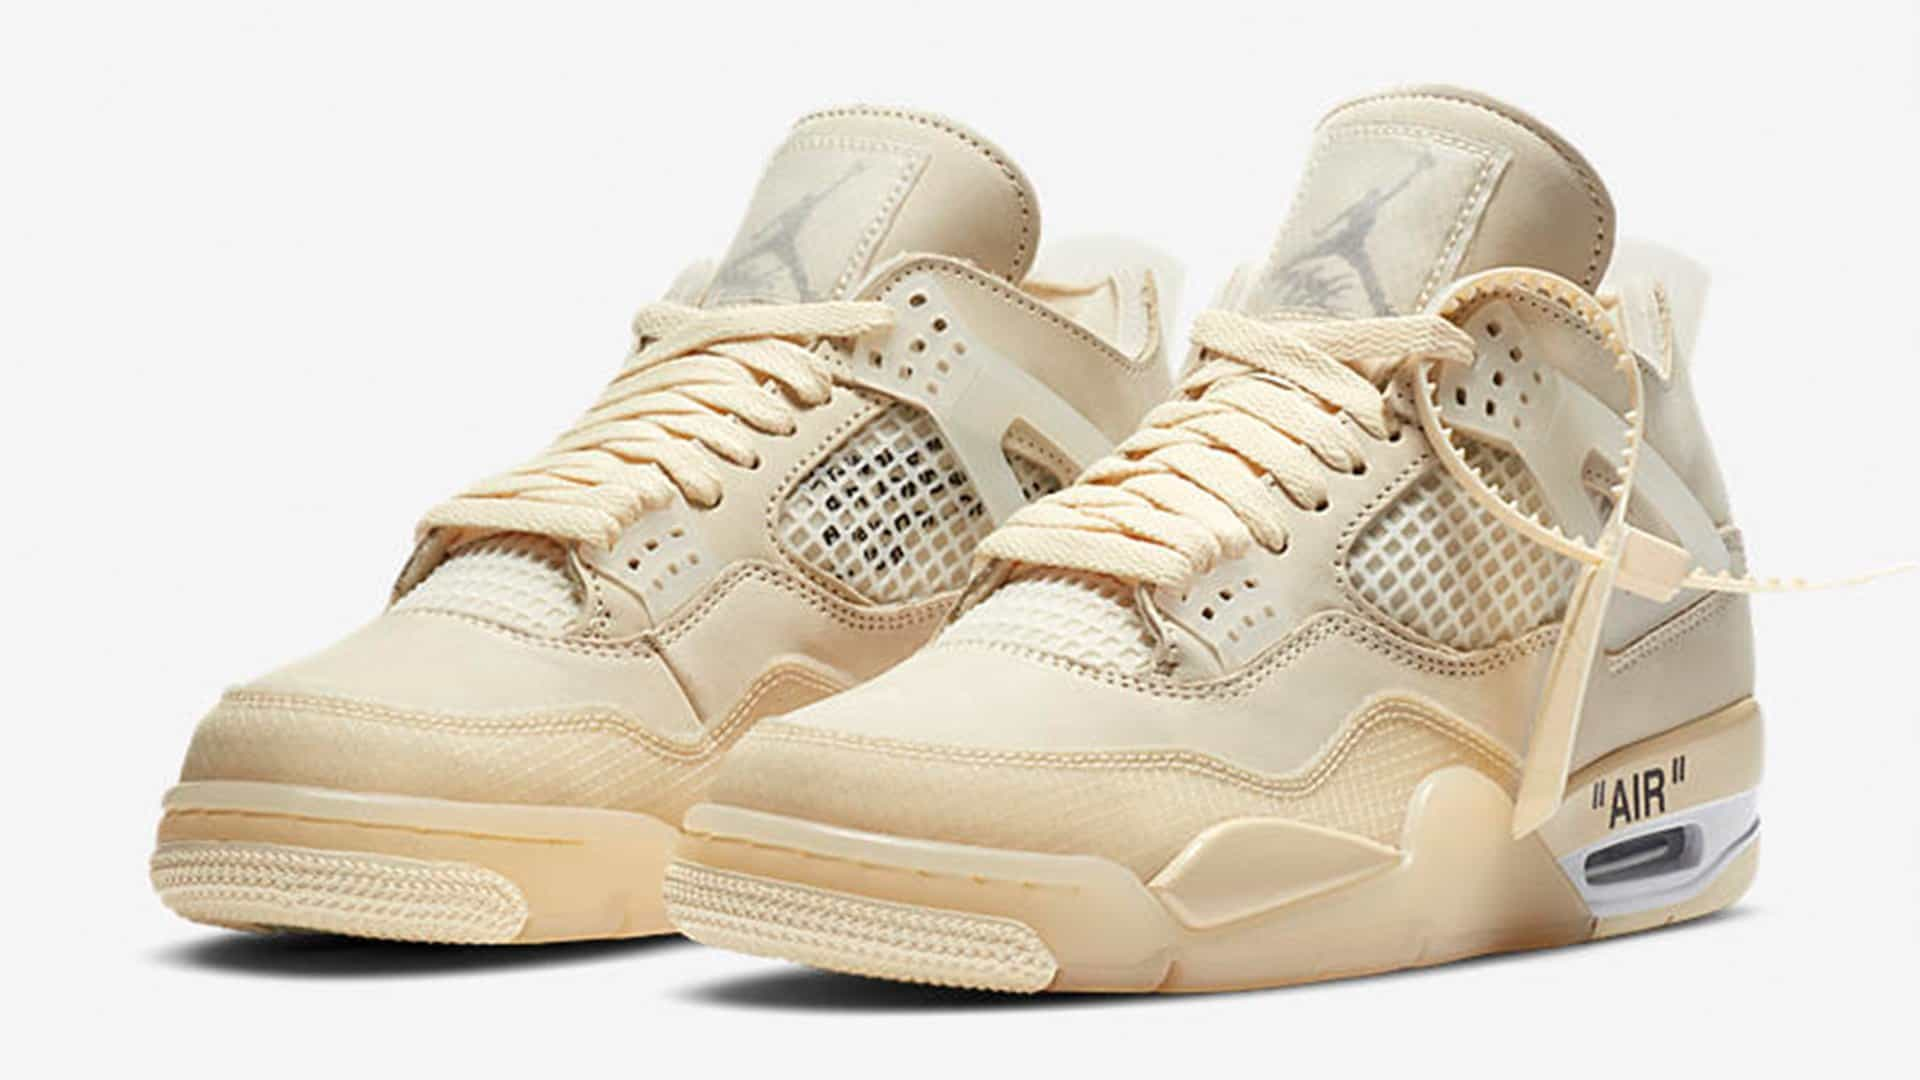 Off-White X Air Jordan 4 WMNS 'Sail' Official Images Released!